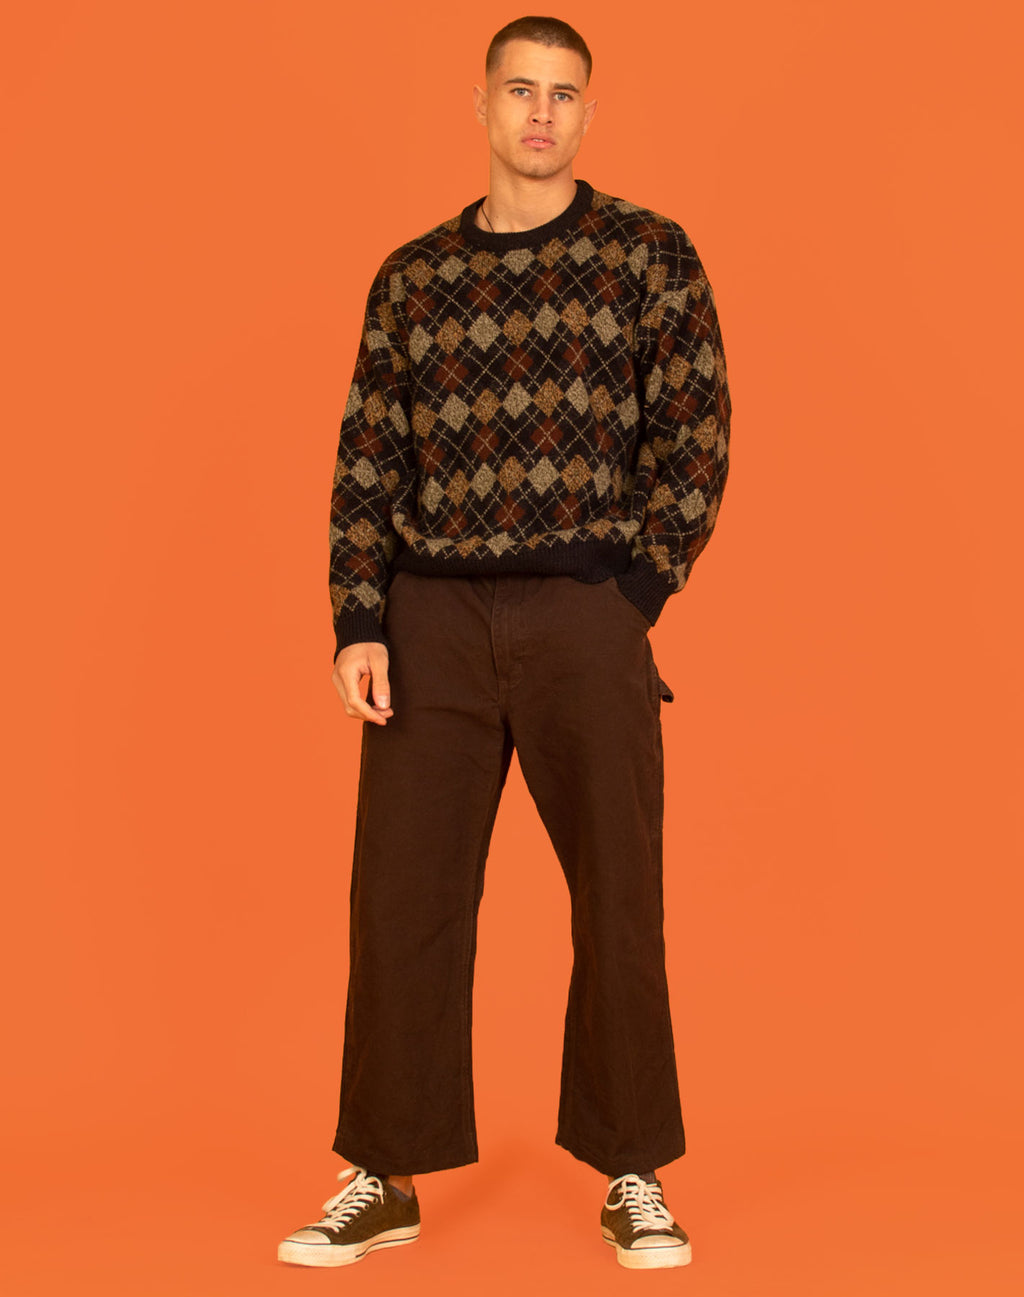 BROWN ARGYLE KNIT JUMPER